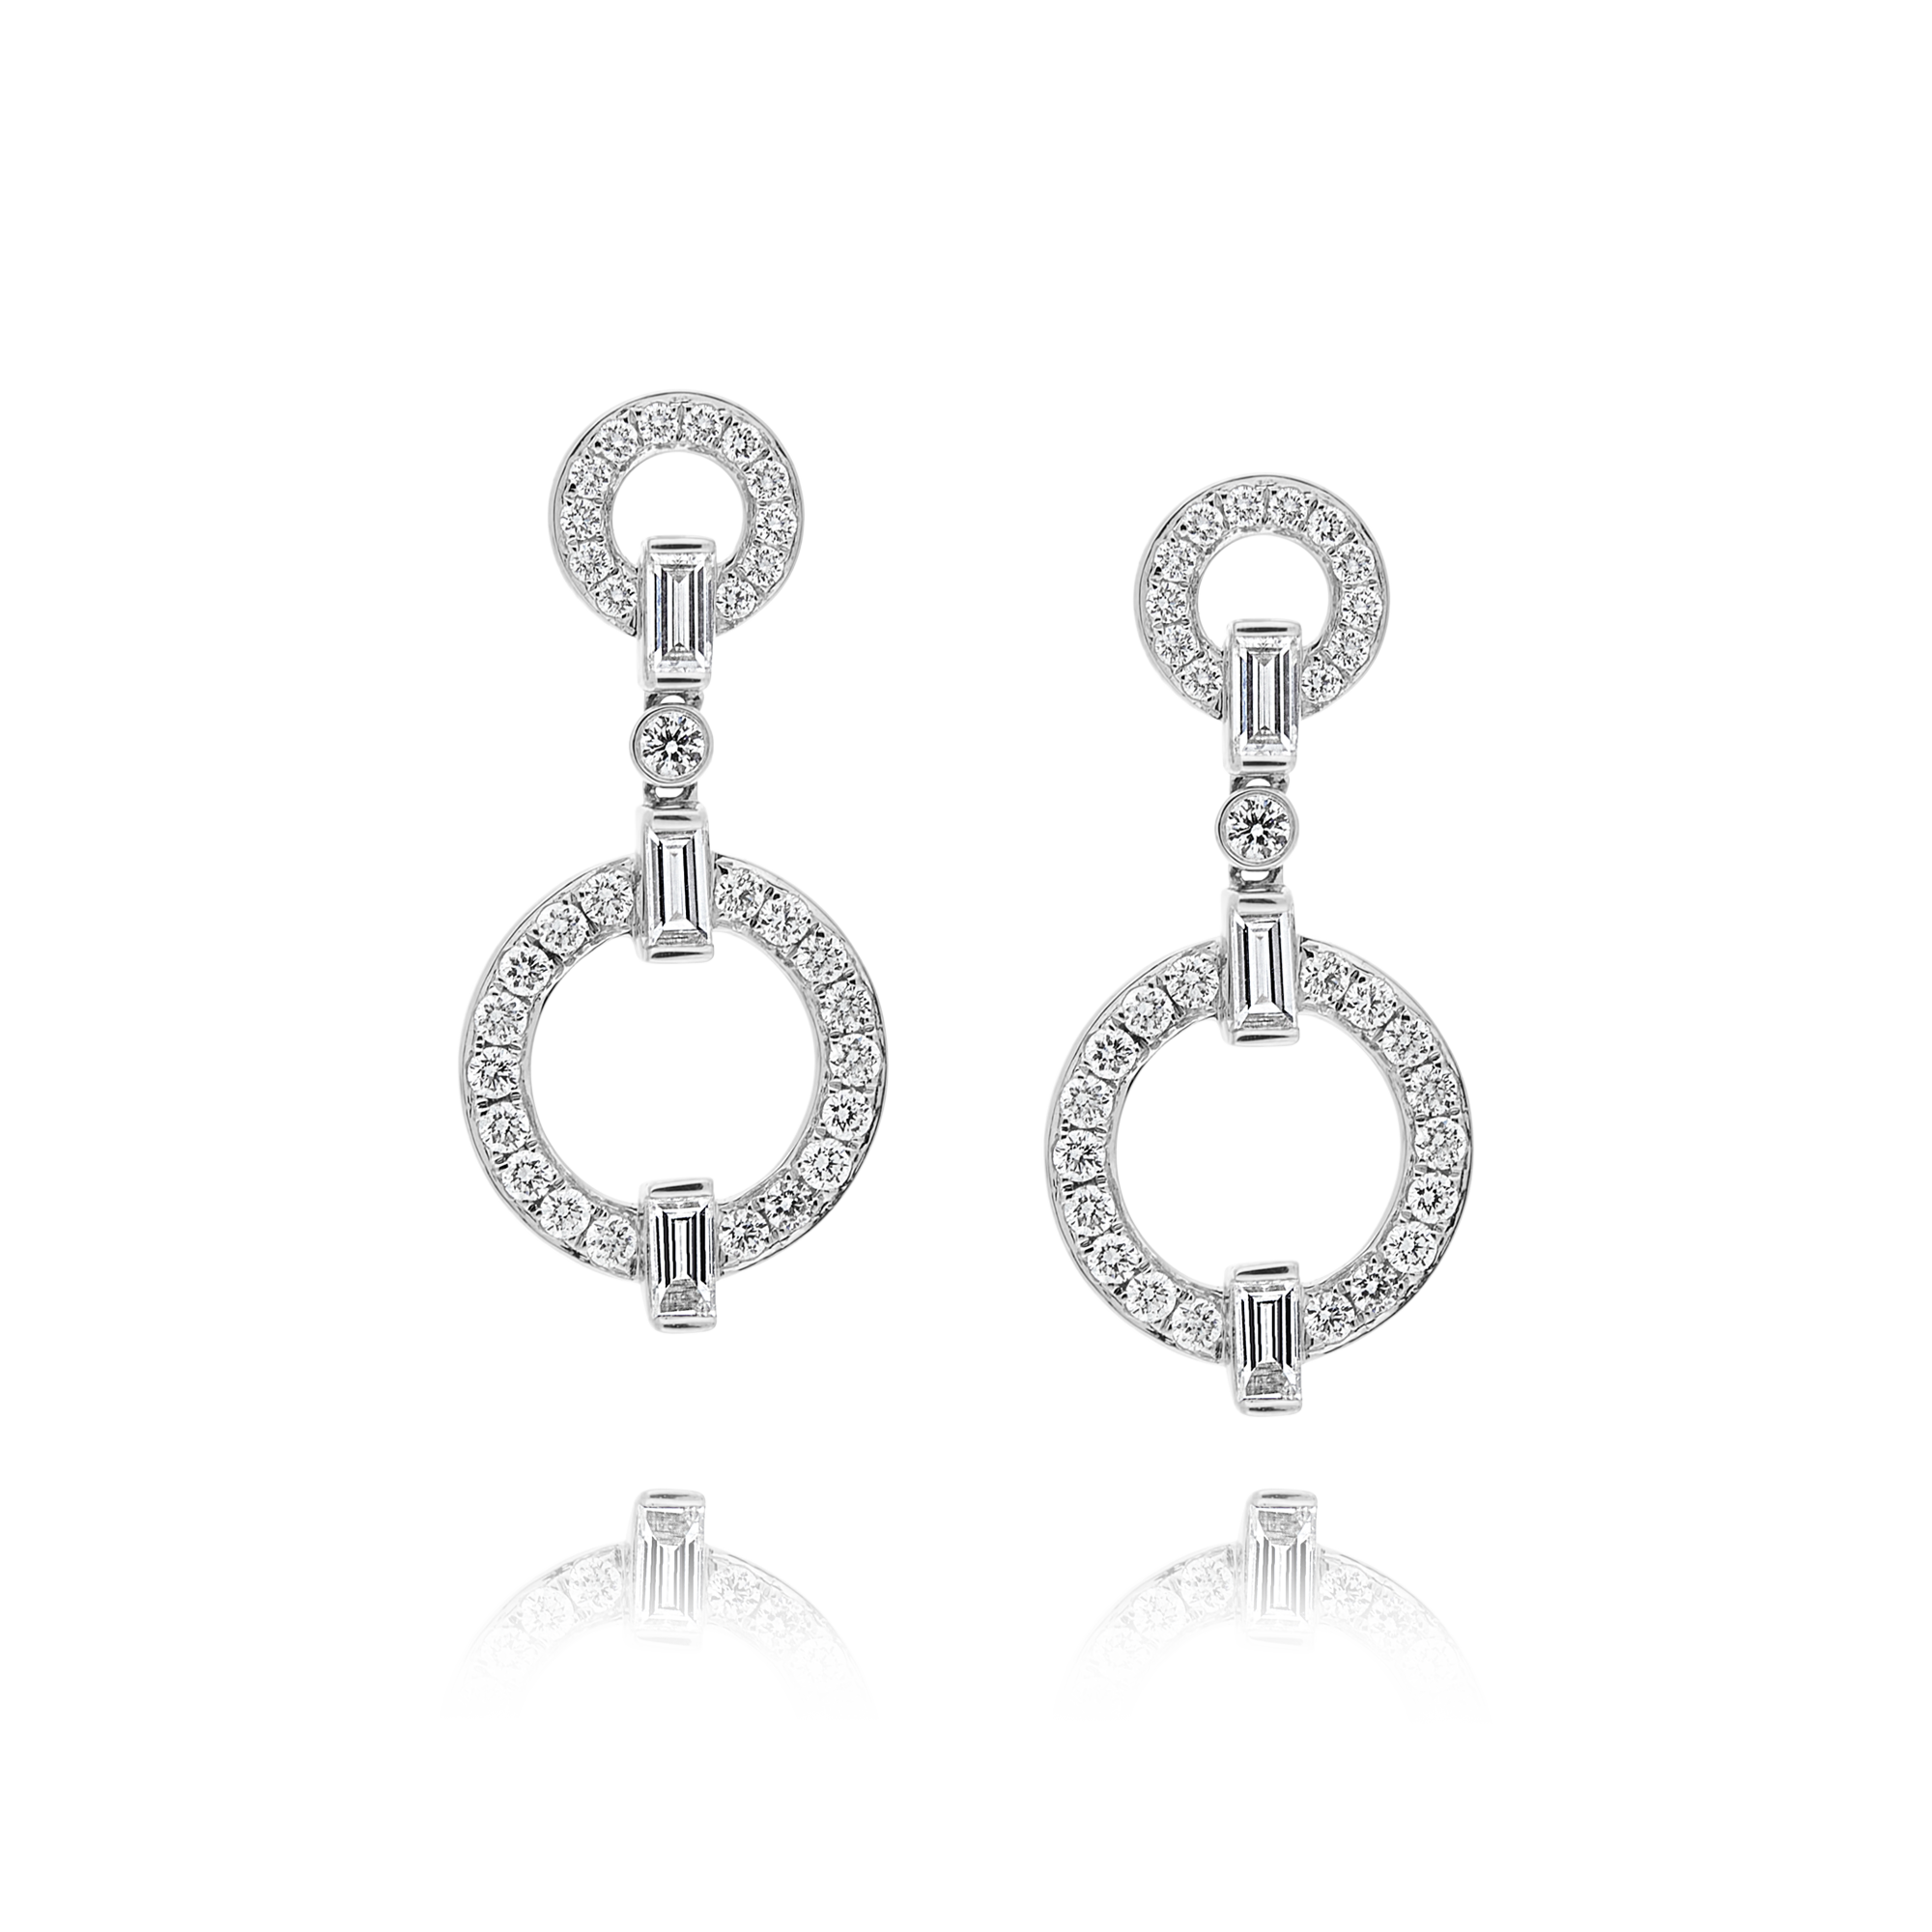 18ct White Gold Drop Diamond Earrings